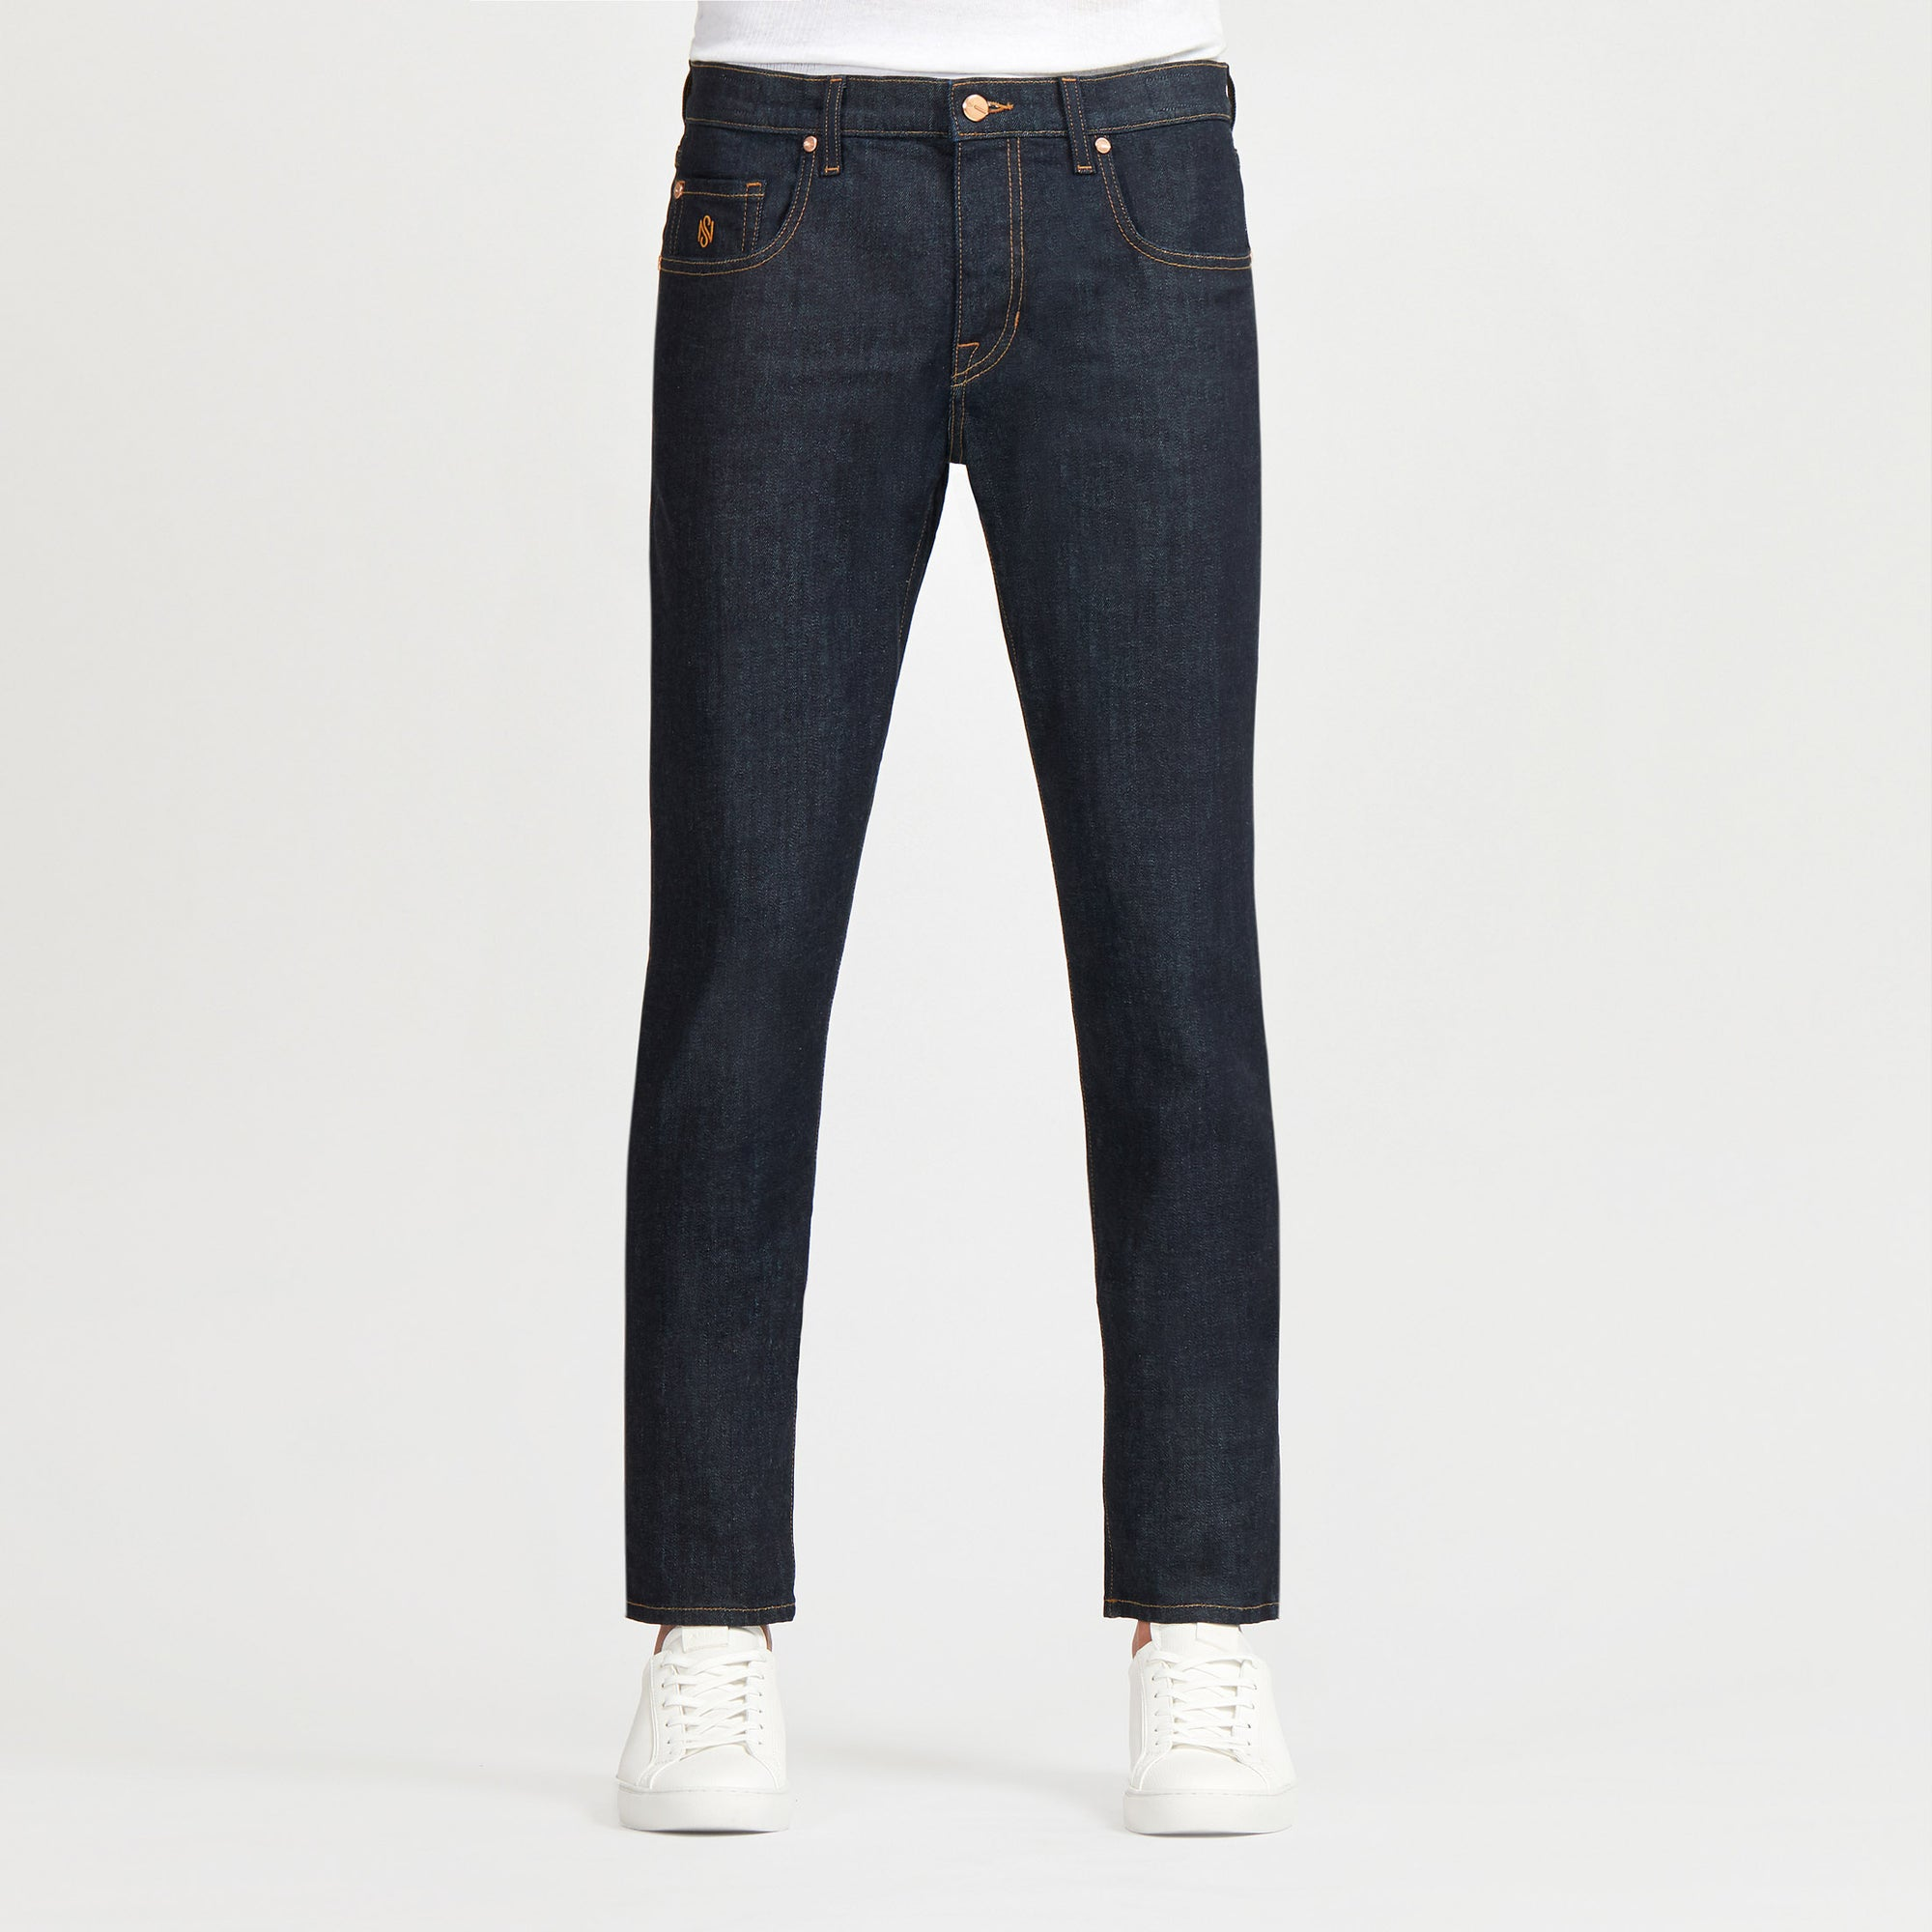 Men's Slim Luxury Jeans Dark Blue